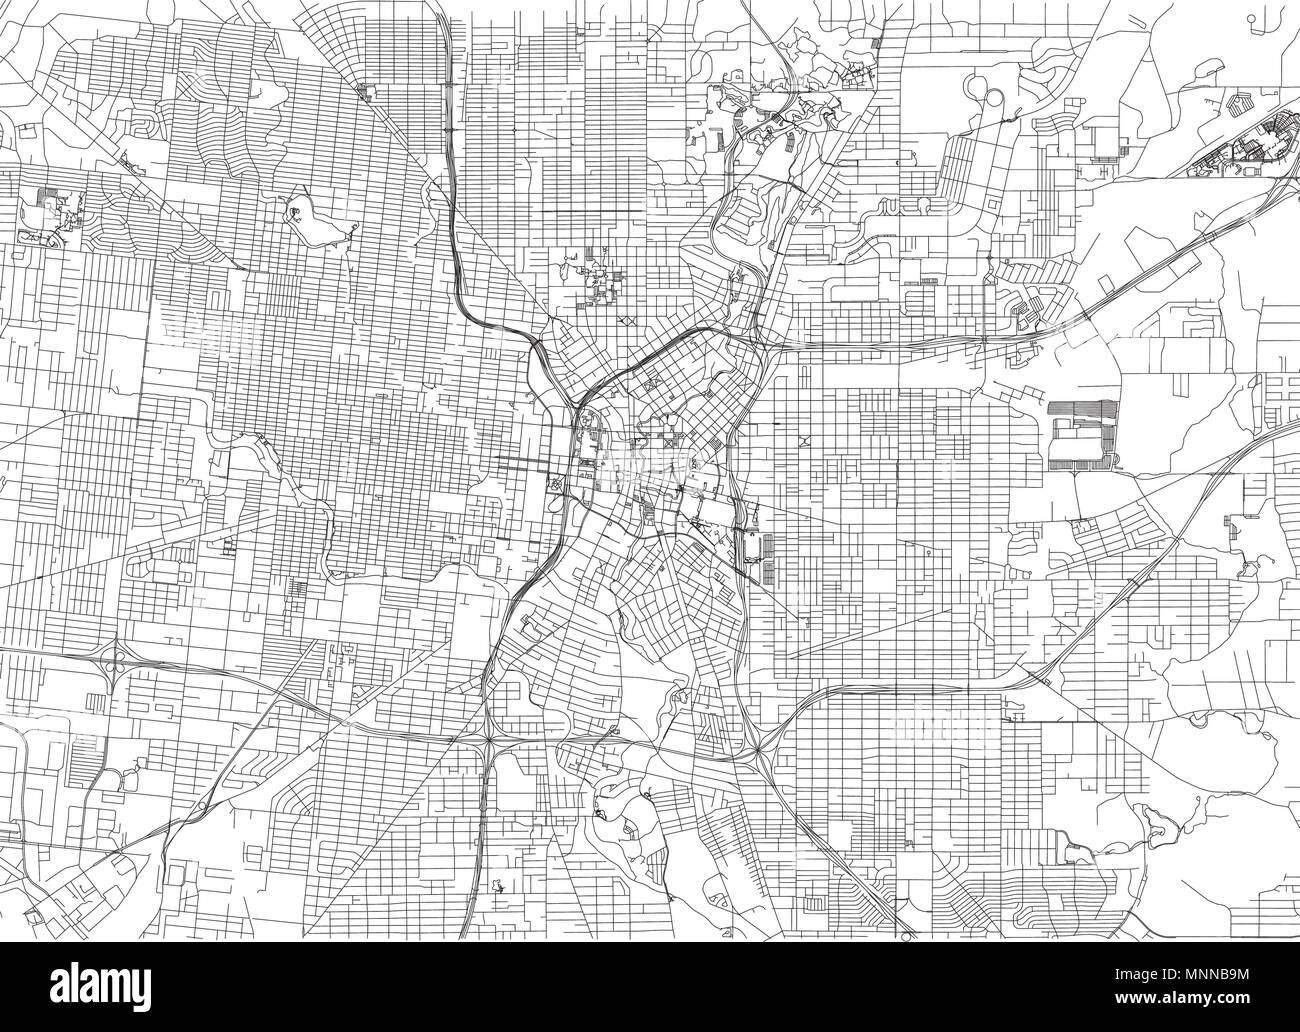 Streets Of San Antonio City Map Texas Roads And Urban Area